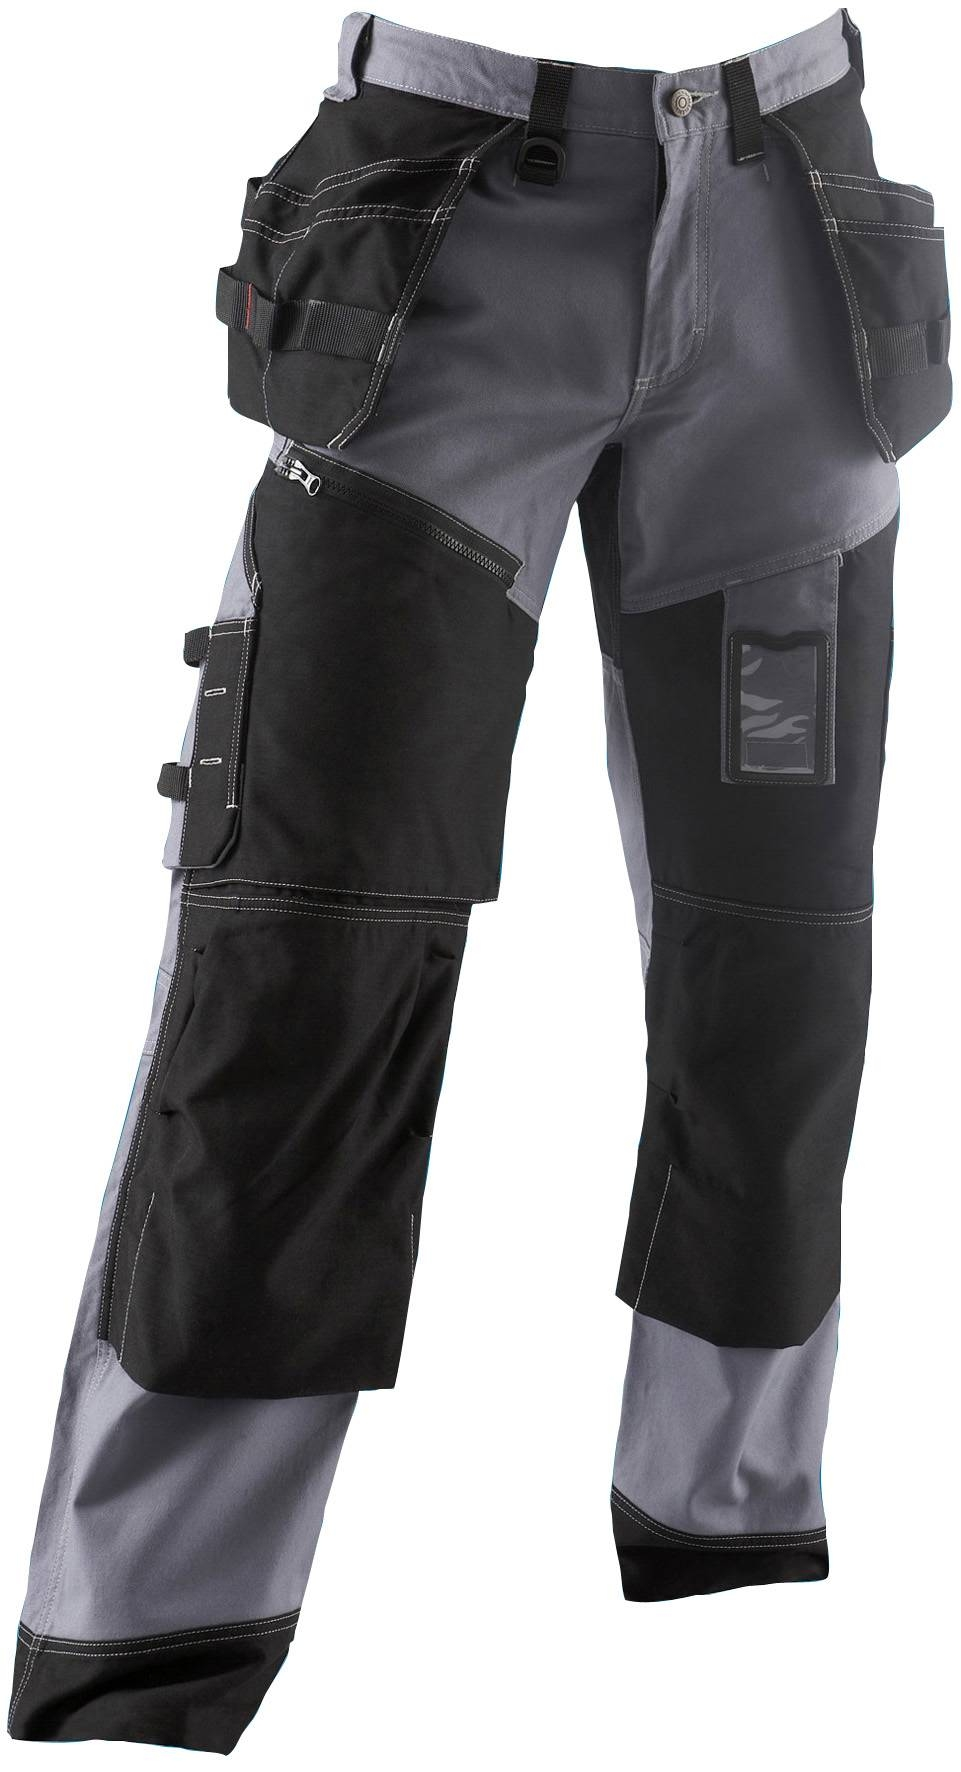 Blaklader introduces the X1600 workpants: the toughest and most ...